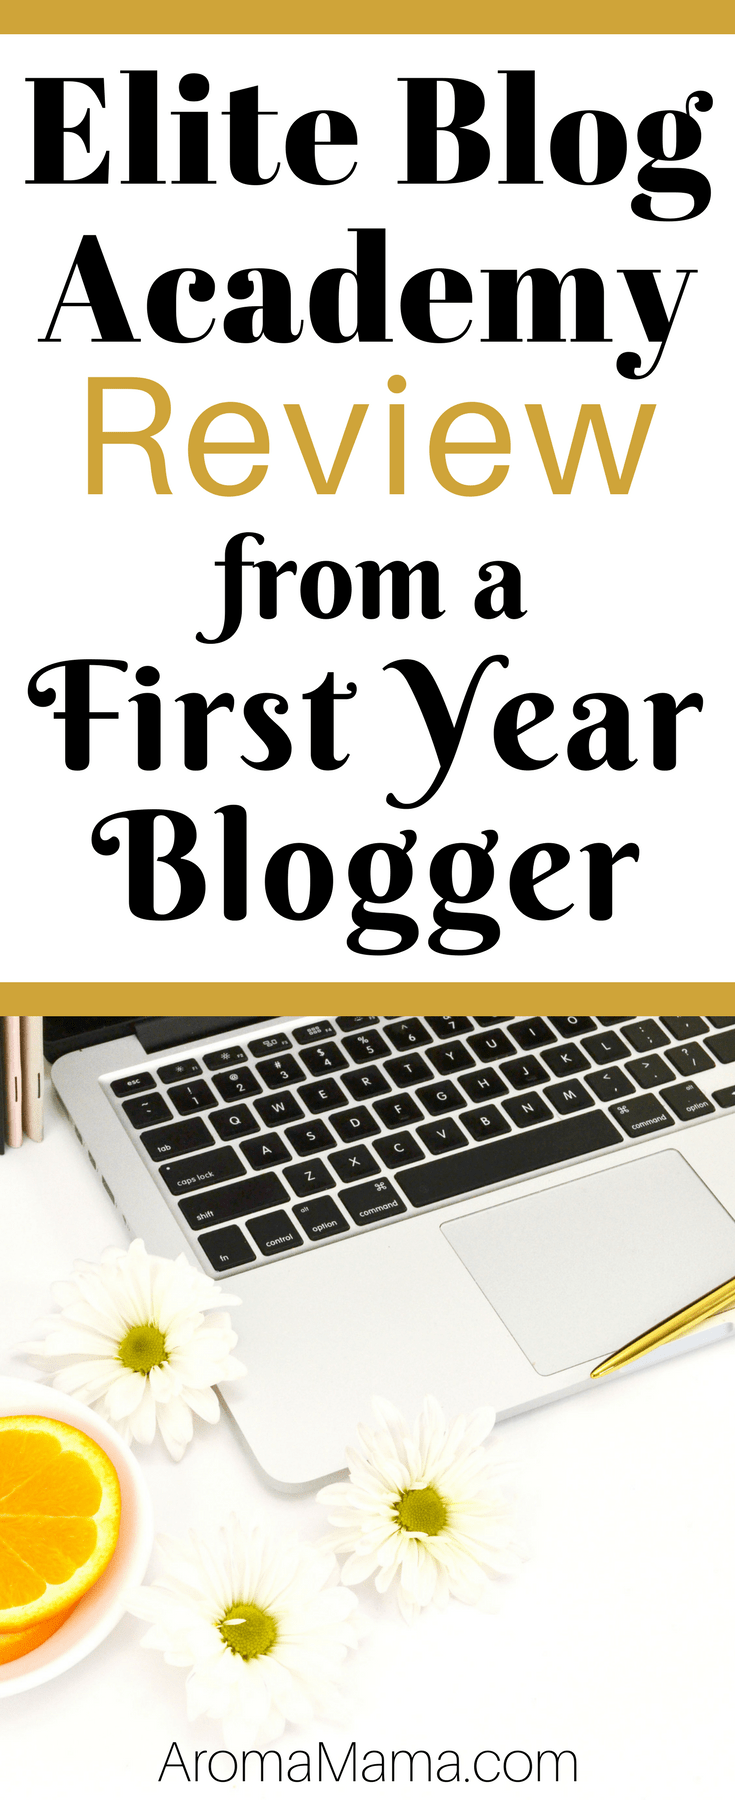 Are you considering Elite Blog Academy as an investment to your future? Here is my Elite Blog Academy review to help you make an informed decision. #EBA #blogging #blog #blogcoursereview